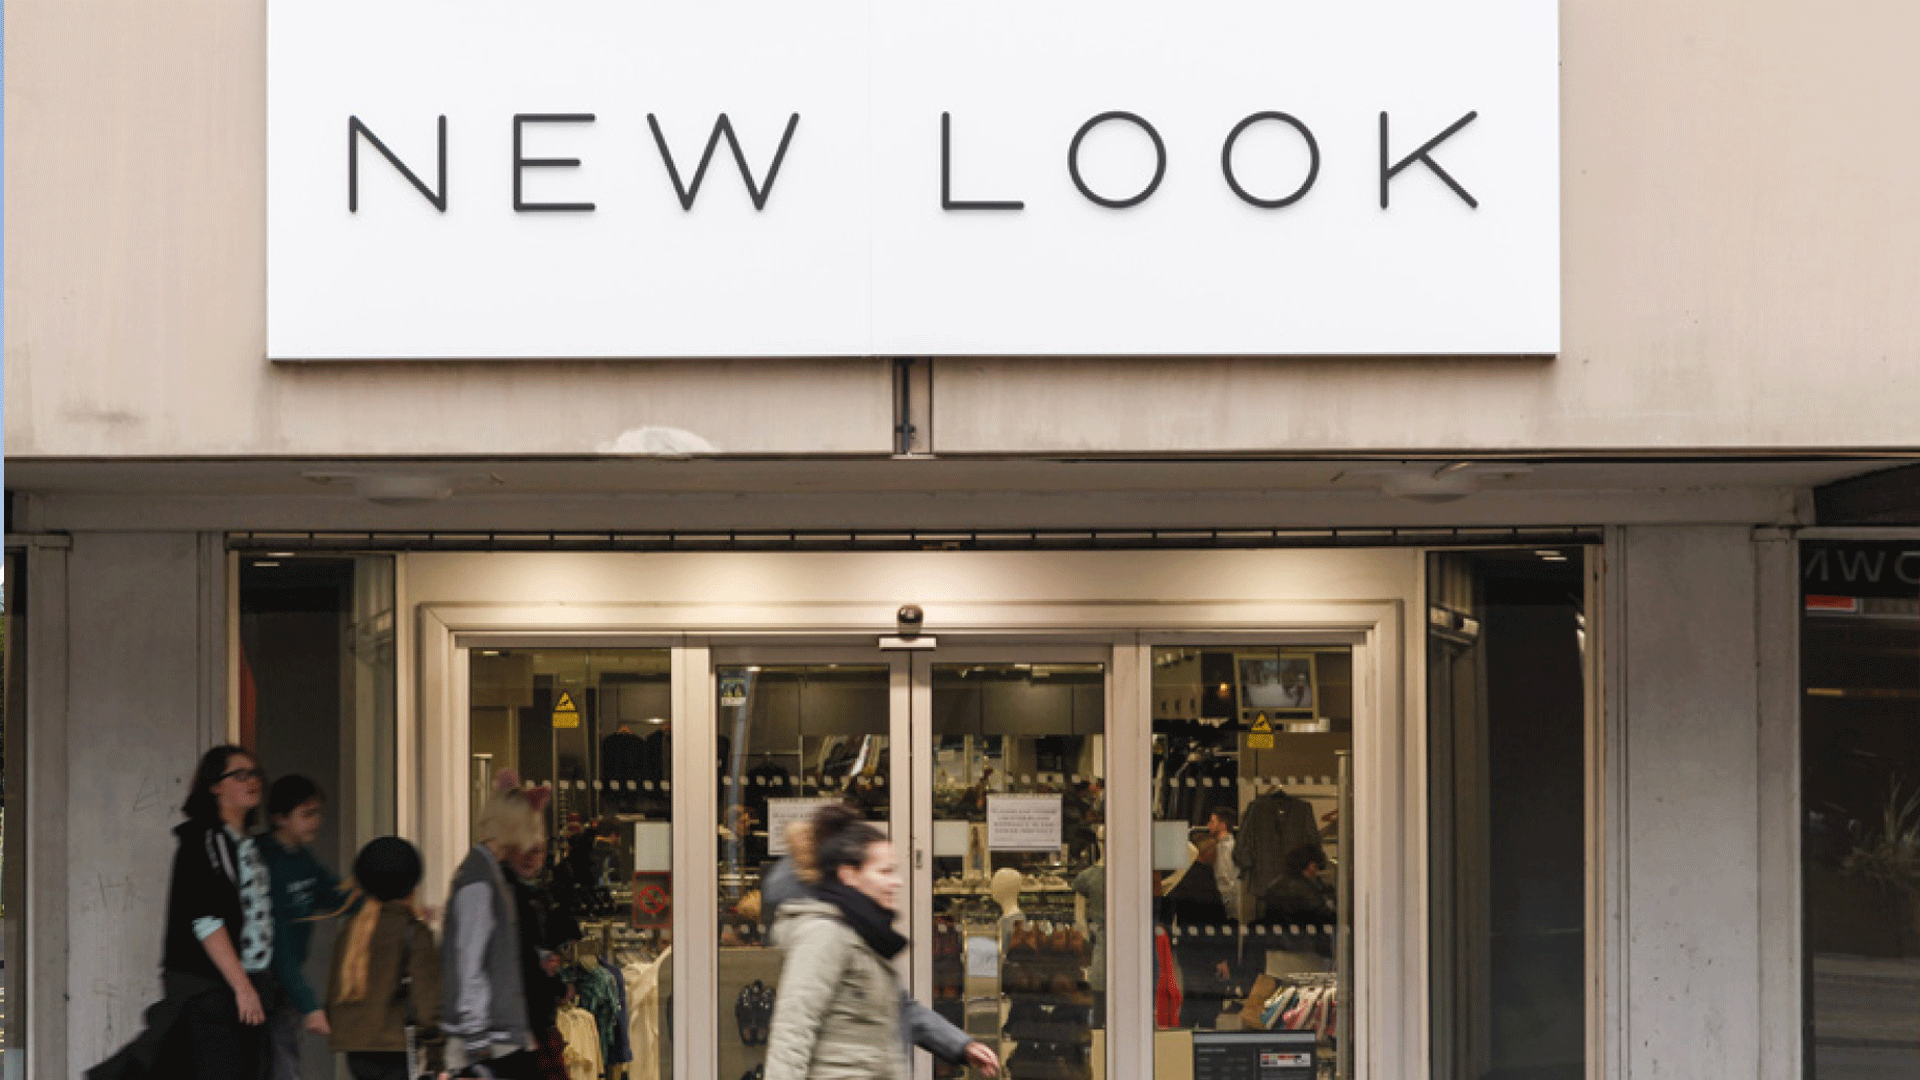 NEW LOOK, COVENTRY